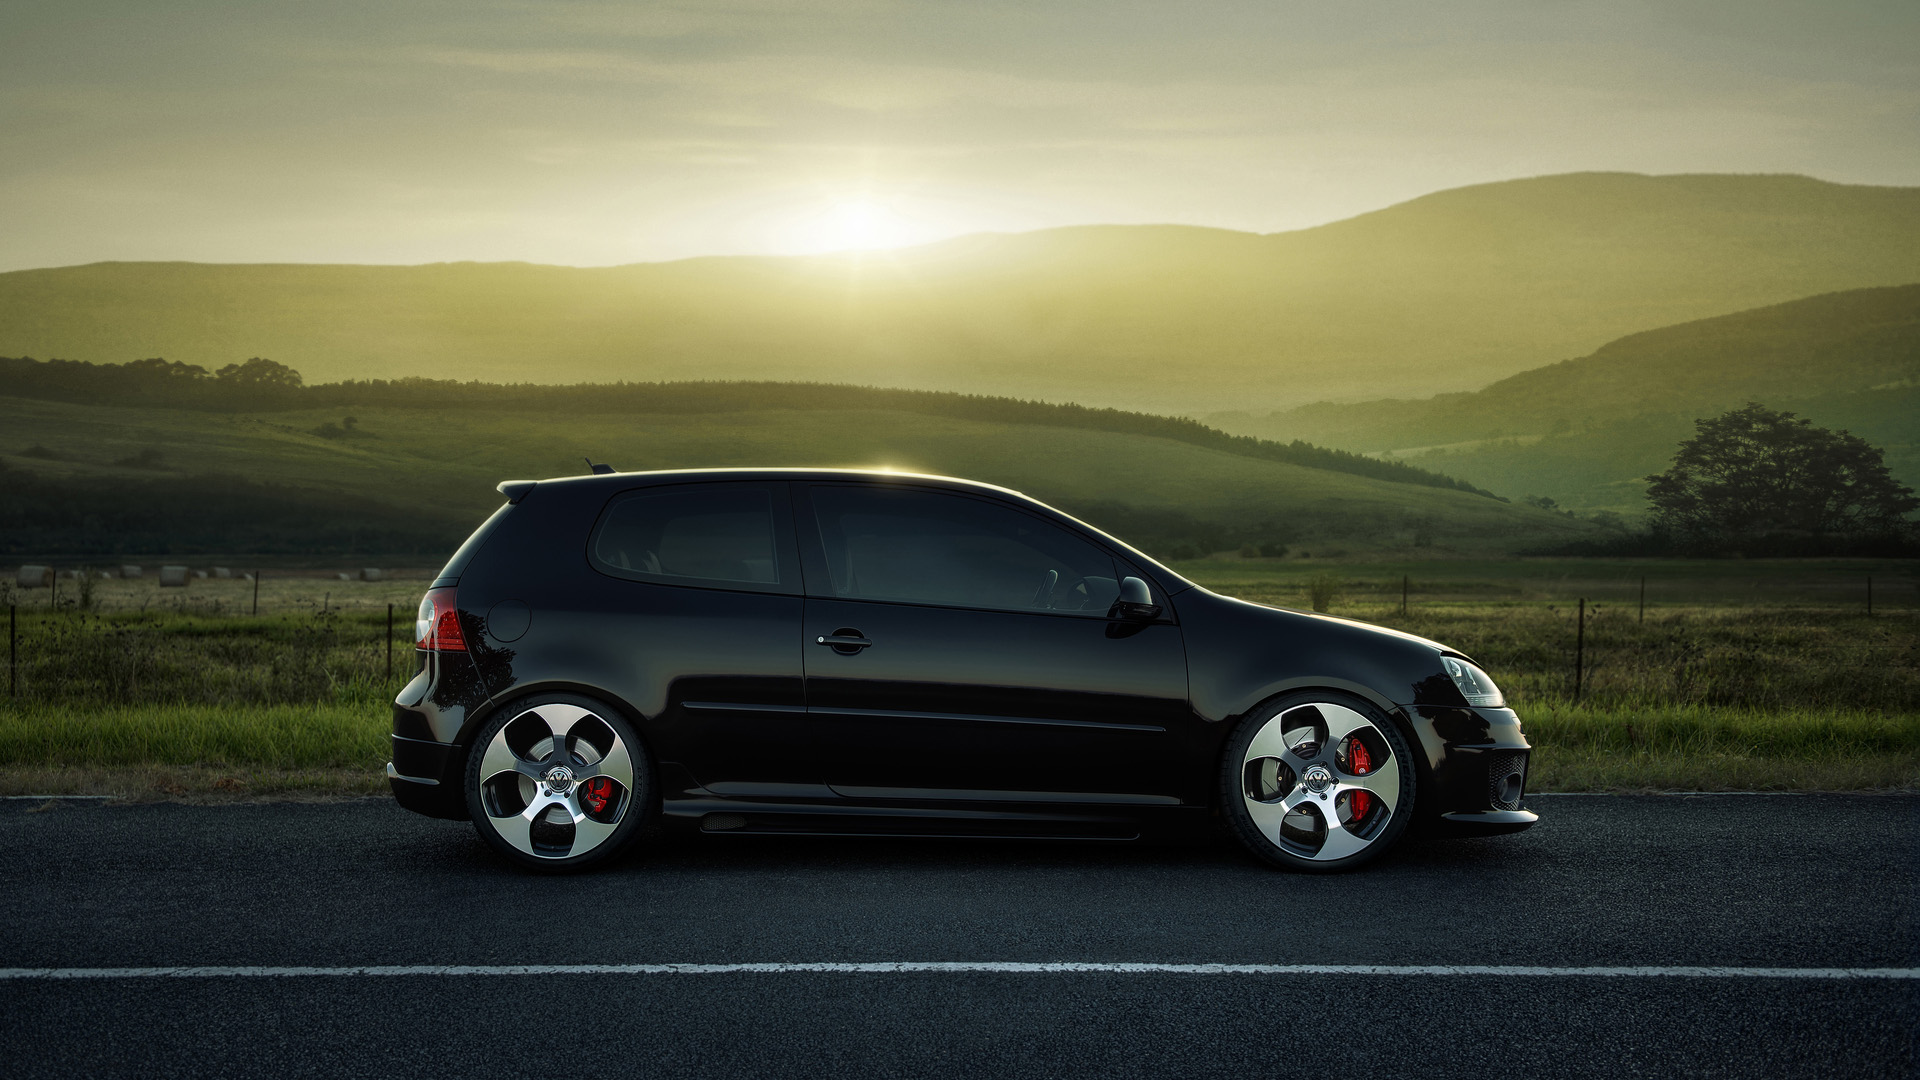 Volkswagen, Golf, GTI, MKV Landscape Desktop Wallpaper